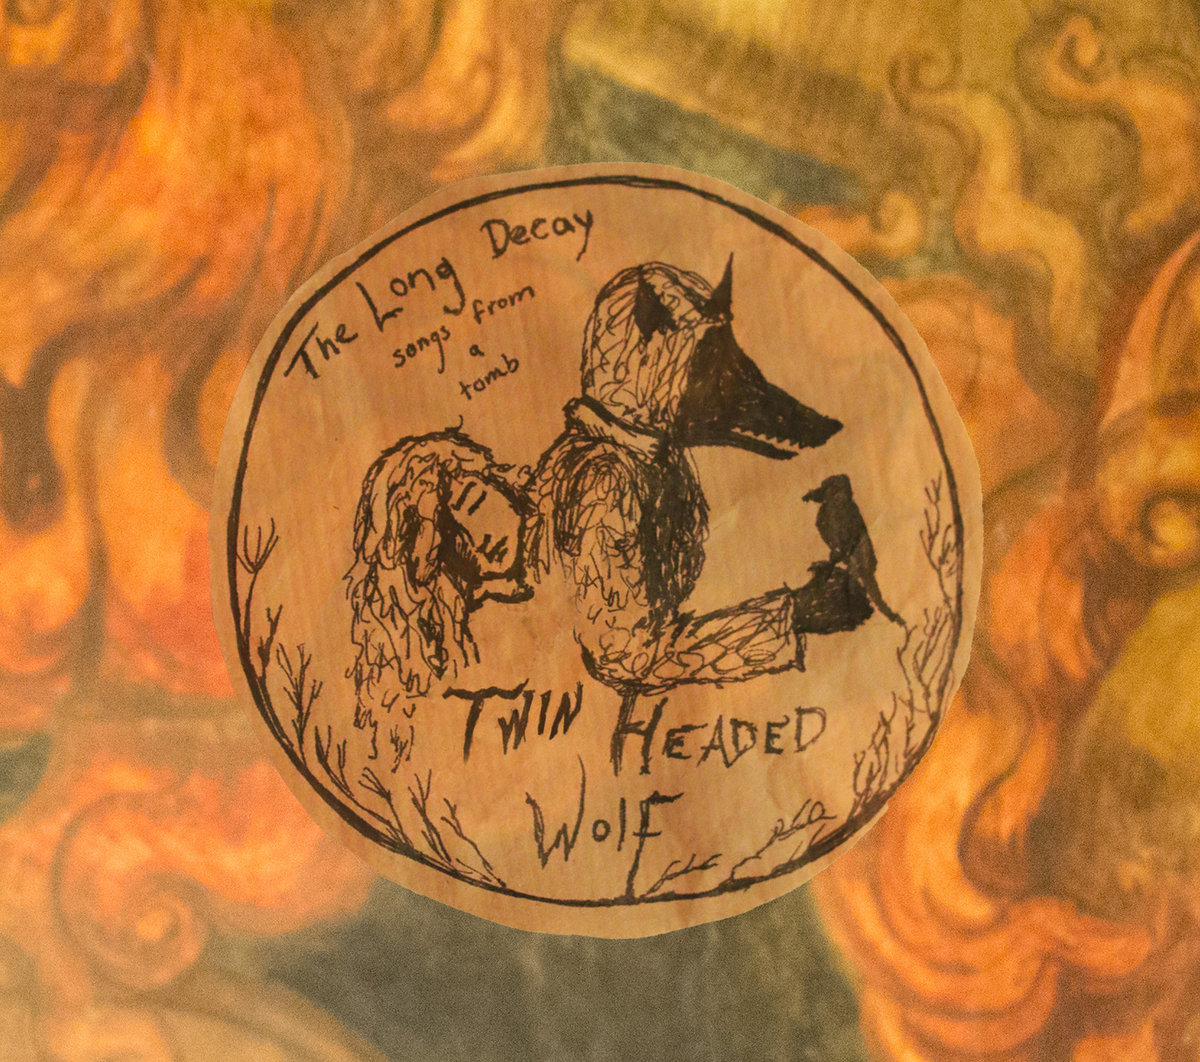 Song of the Riddles | Twin Headed Wolf